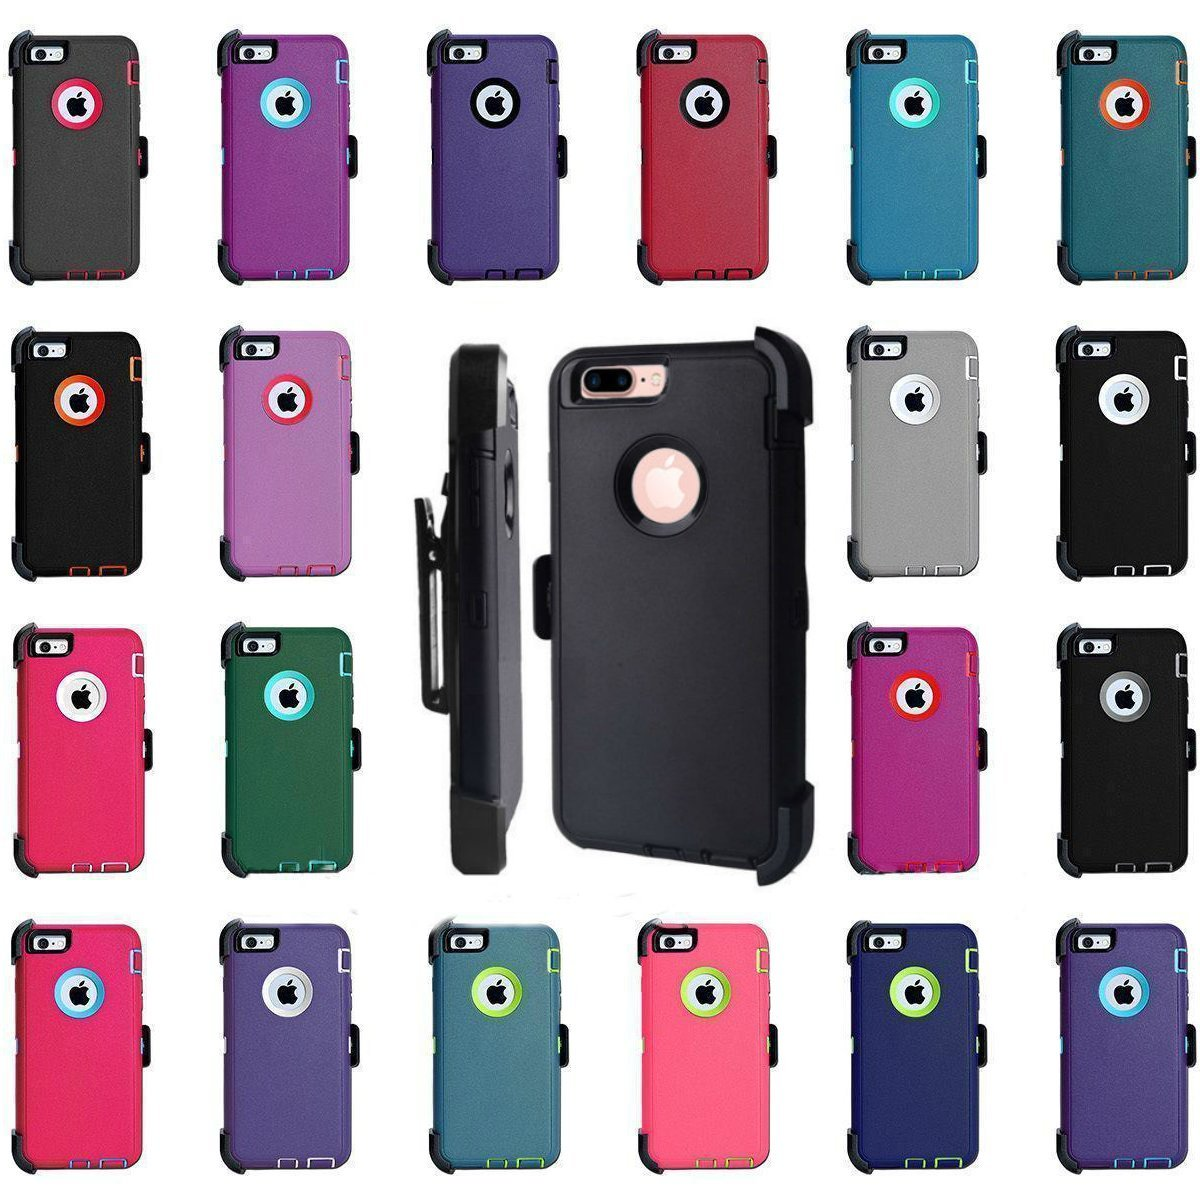 cases you can depend on - sale $7.99 defender cases